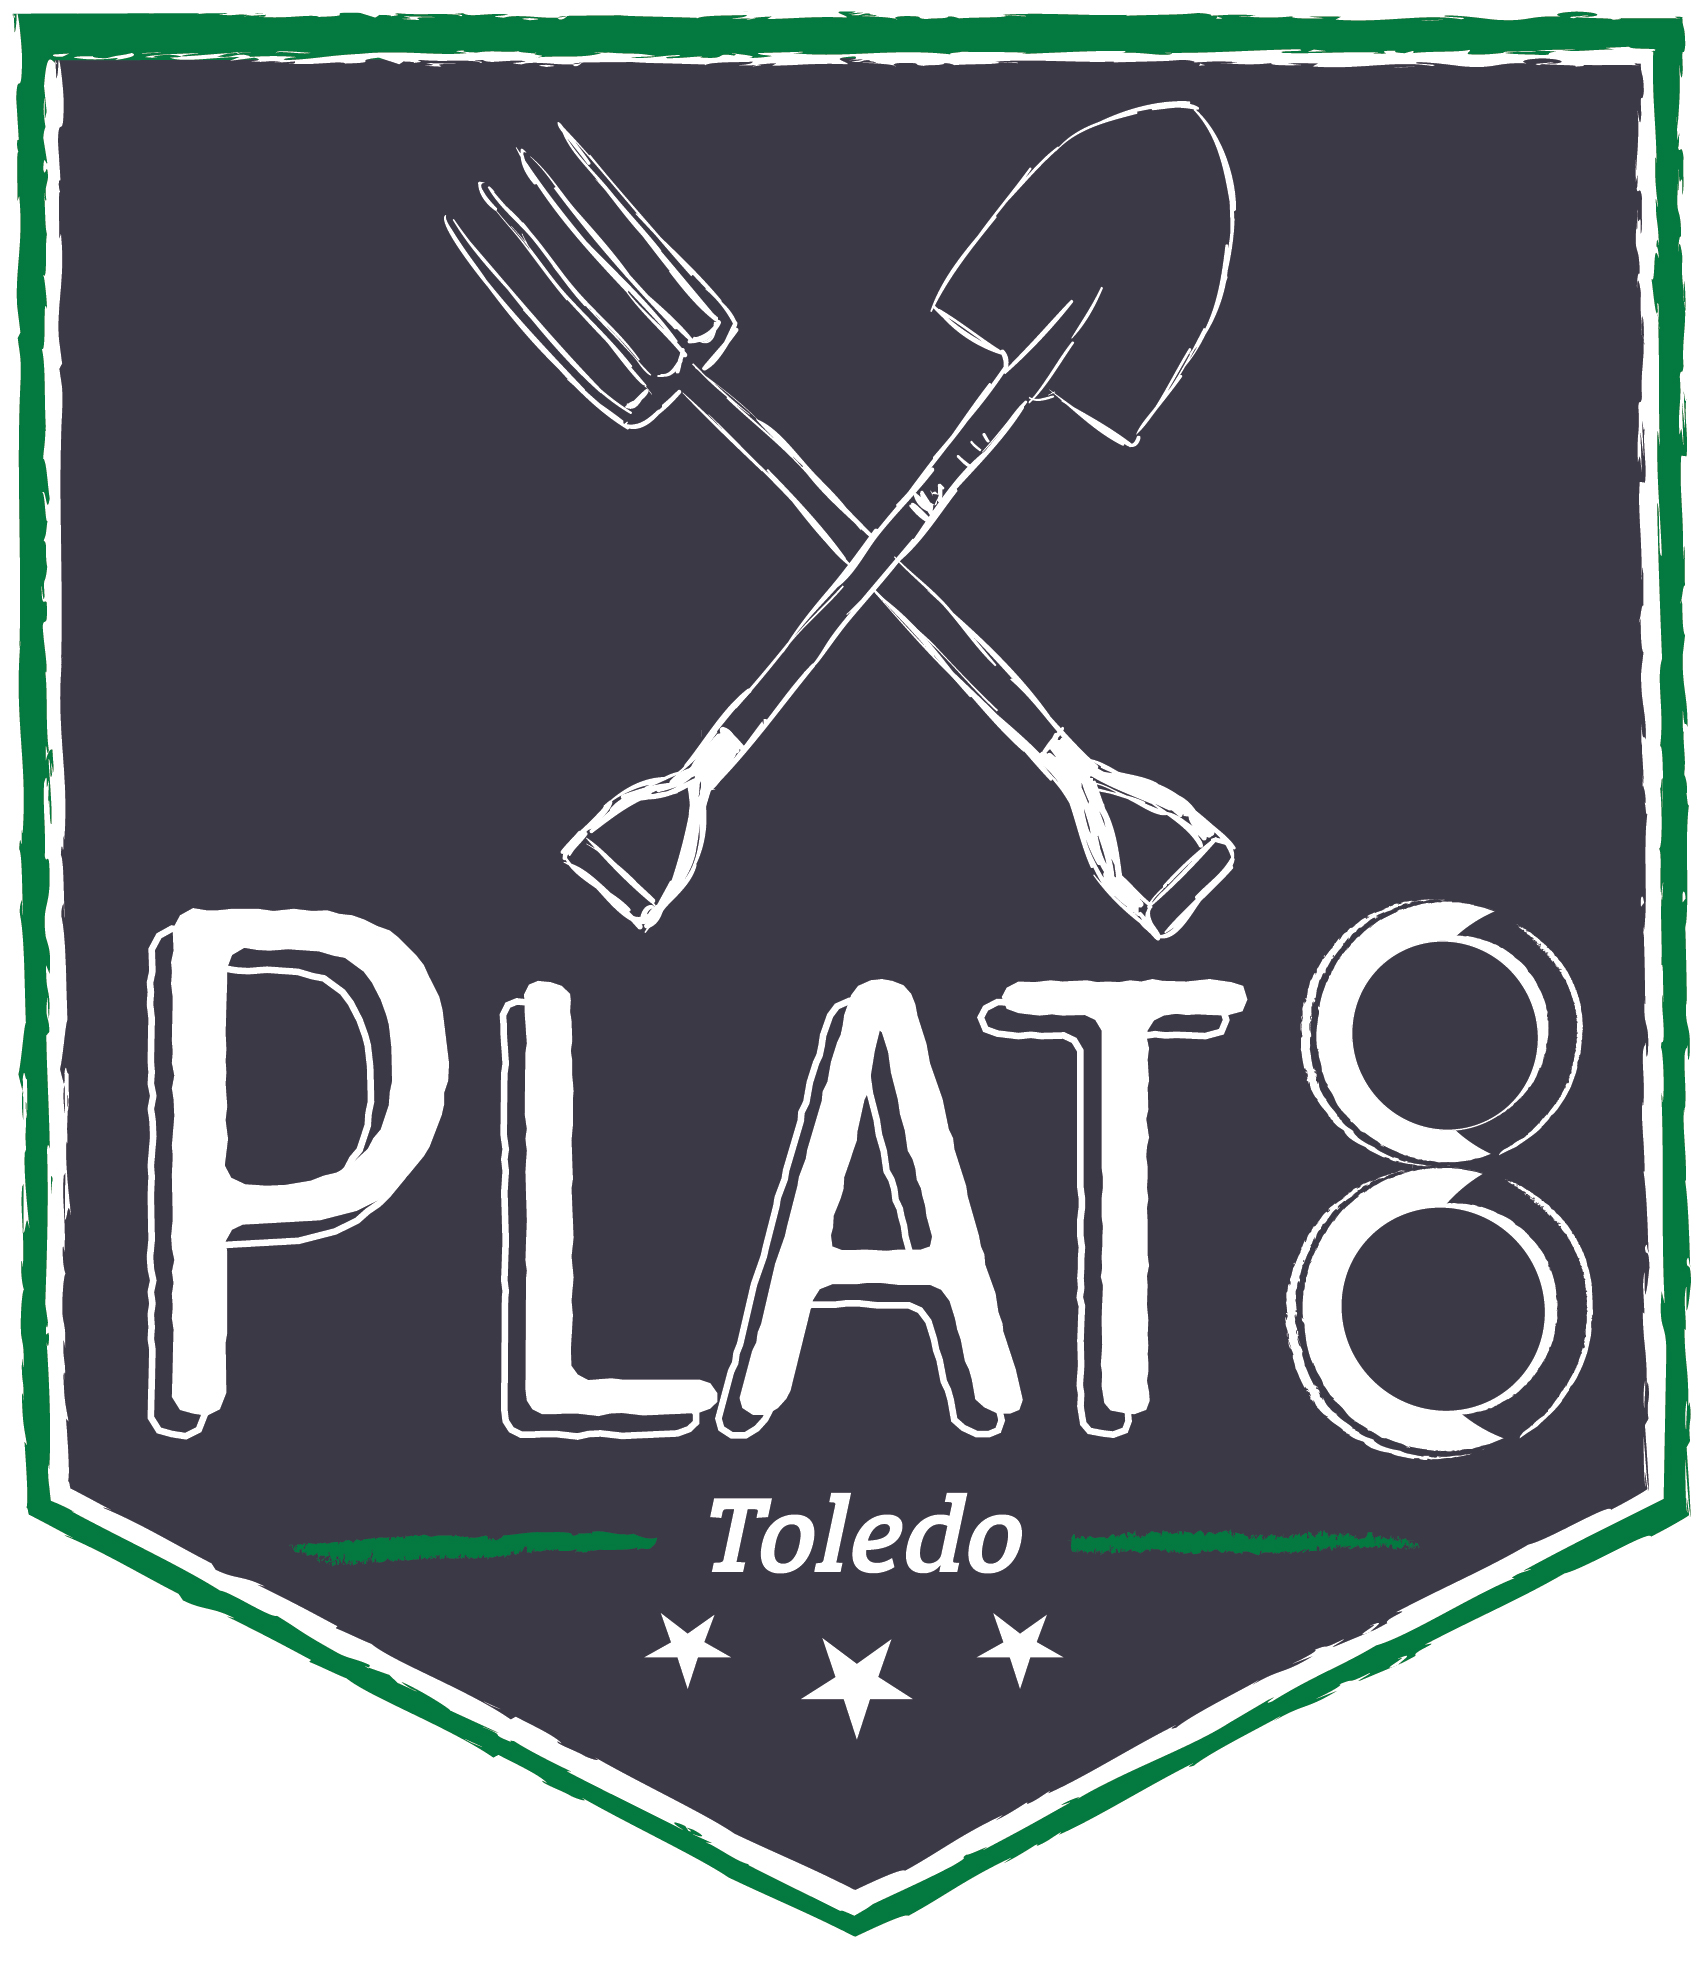 PLAT8 - CATERING